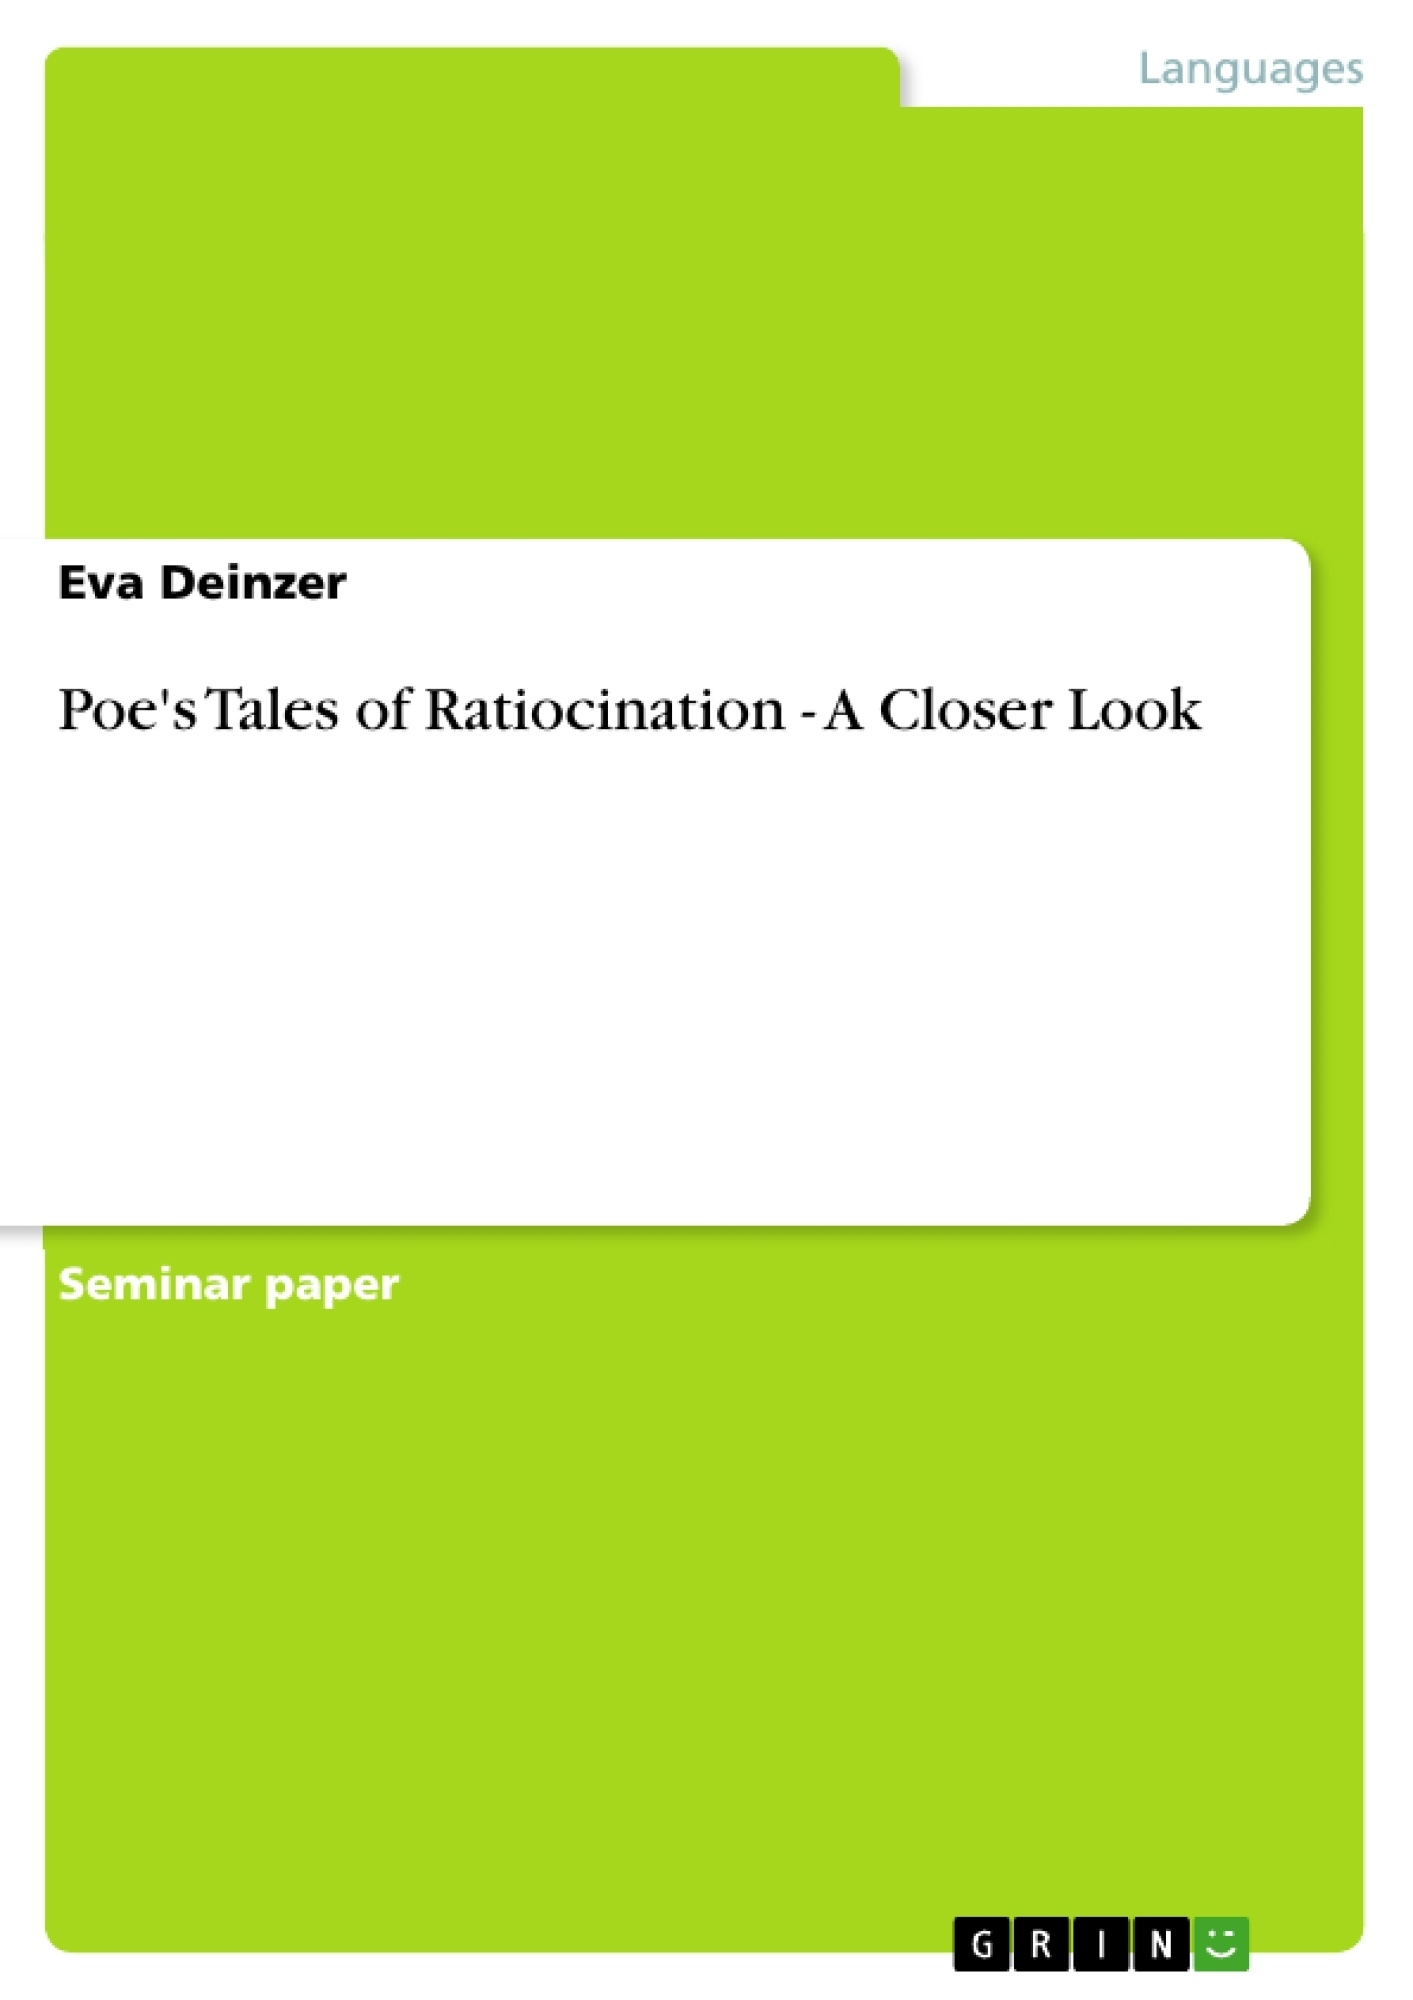 poe s tales of ratiocination a closer look publish your poe s tales of ratiocination a closer look publish your master s thesis bachelor s thesis essay or term paper